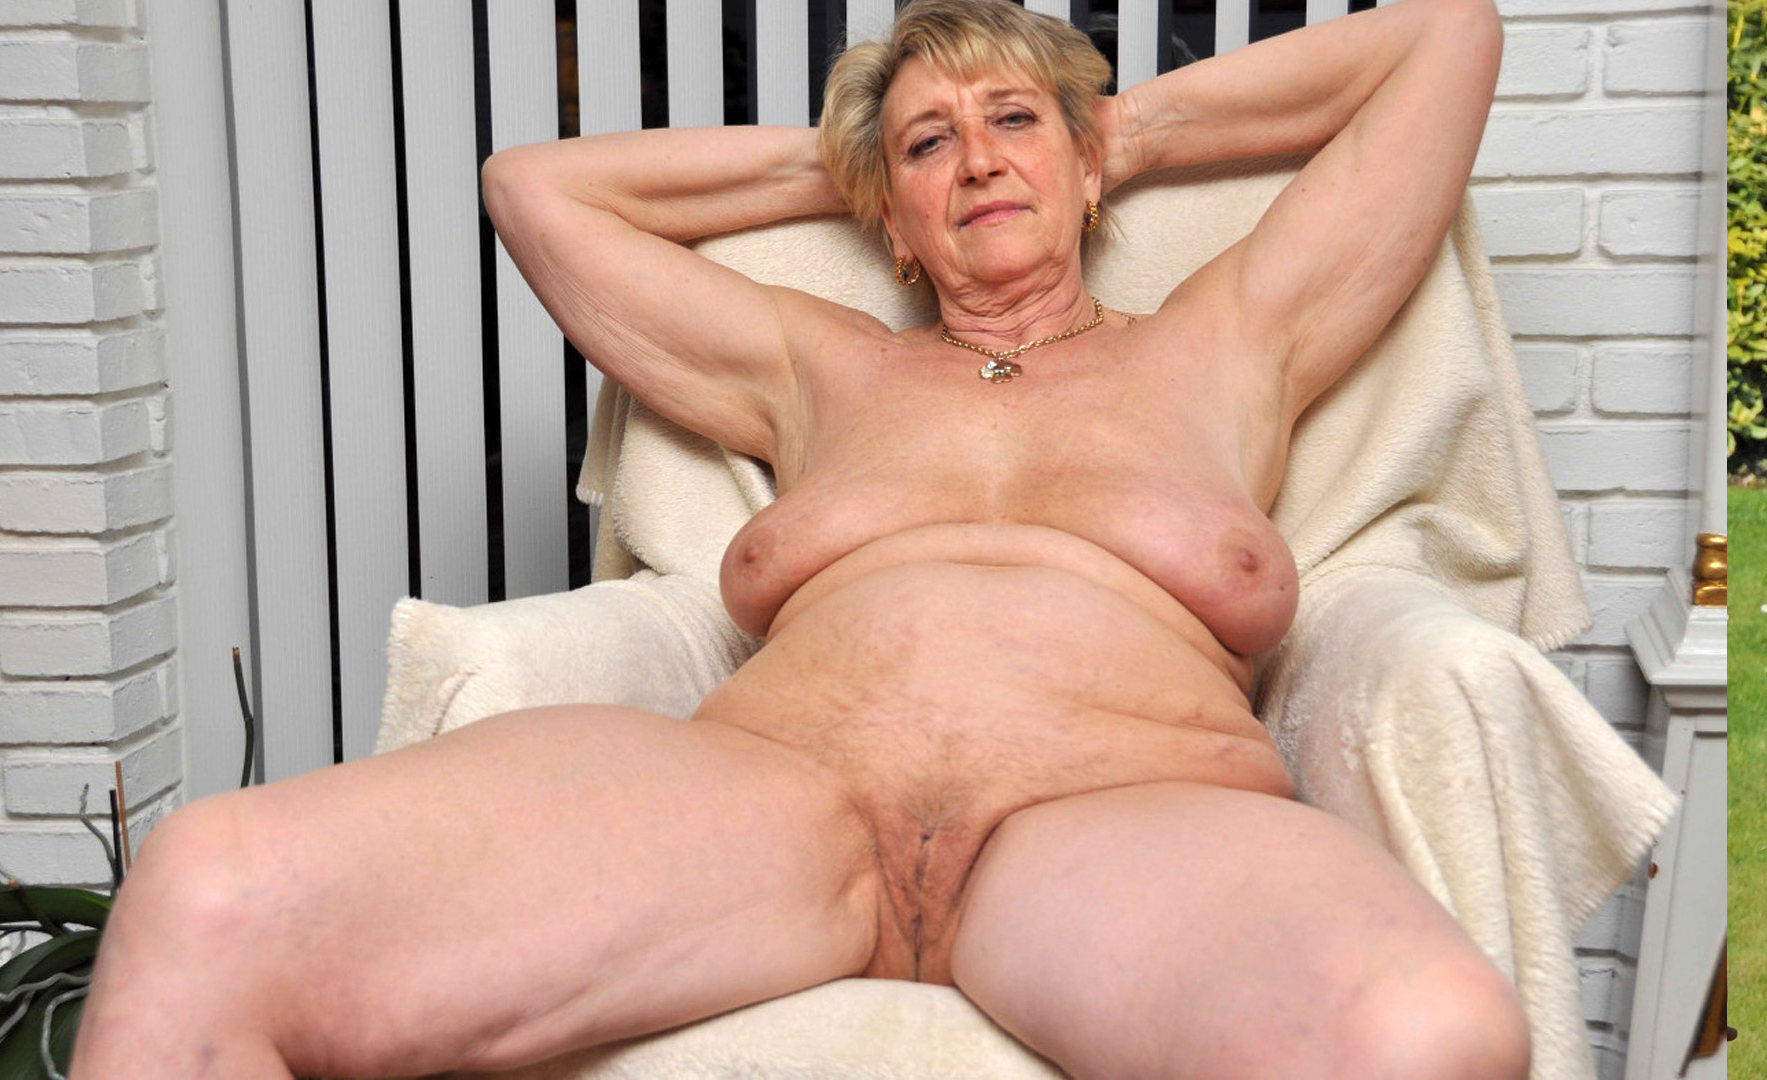 Older lady naked from behind